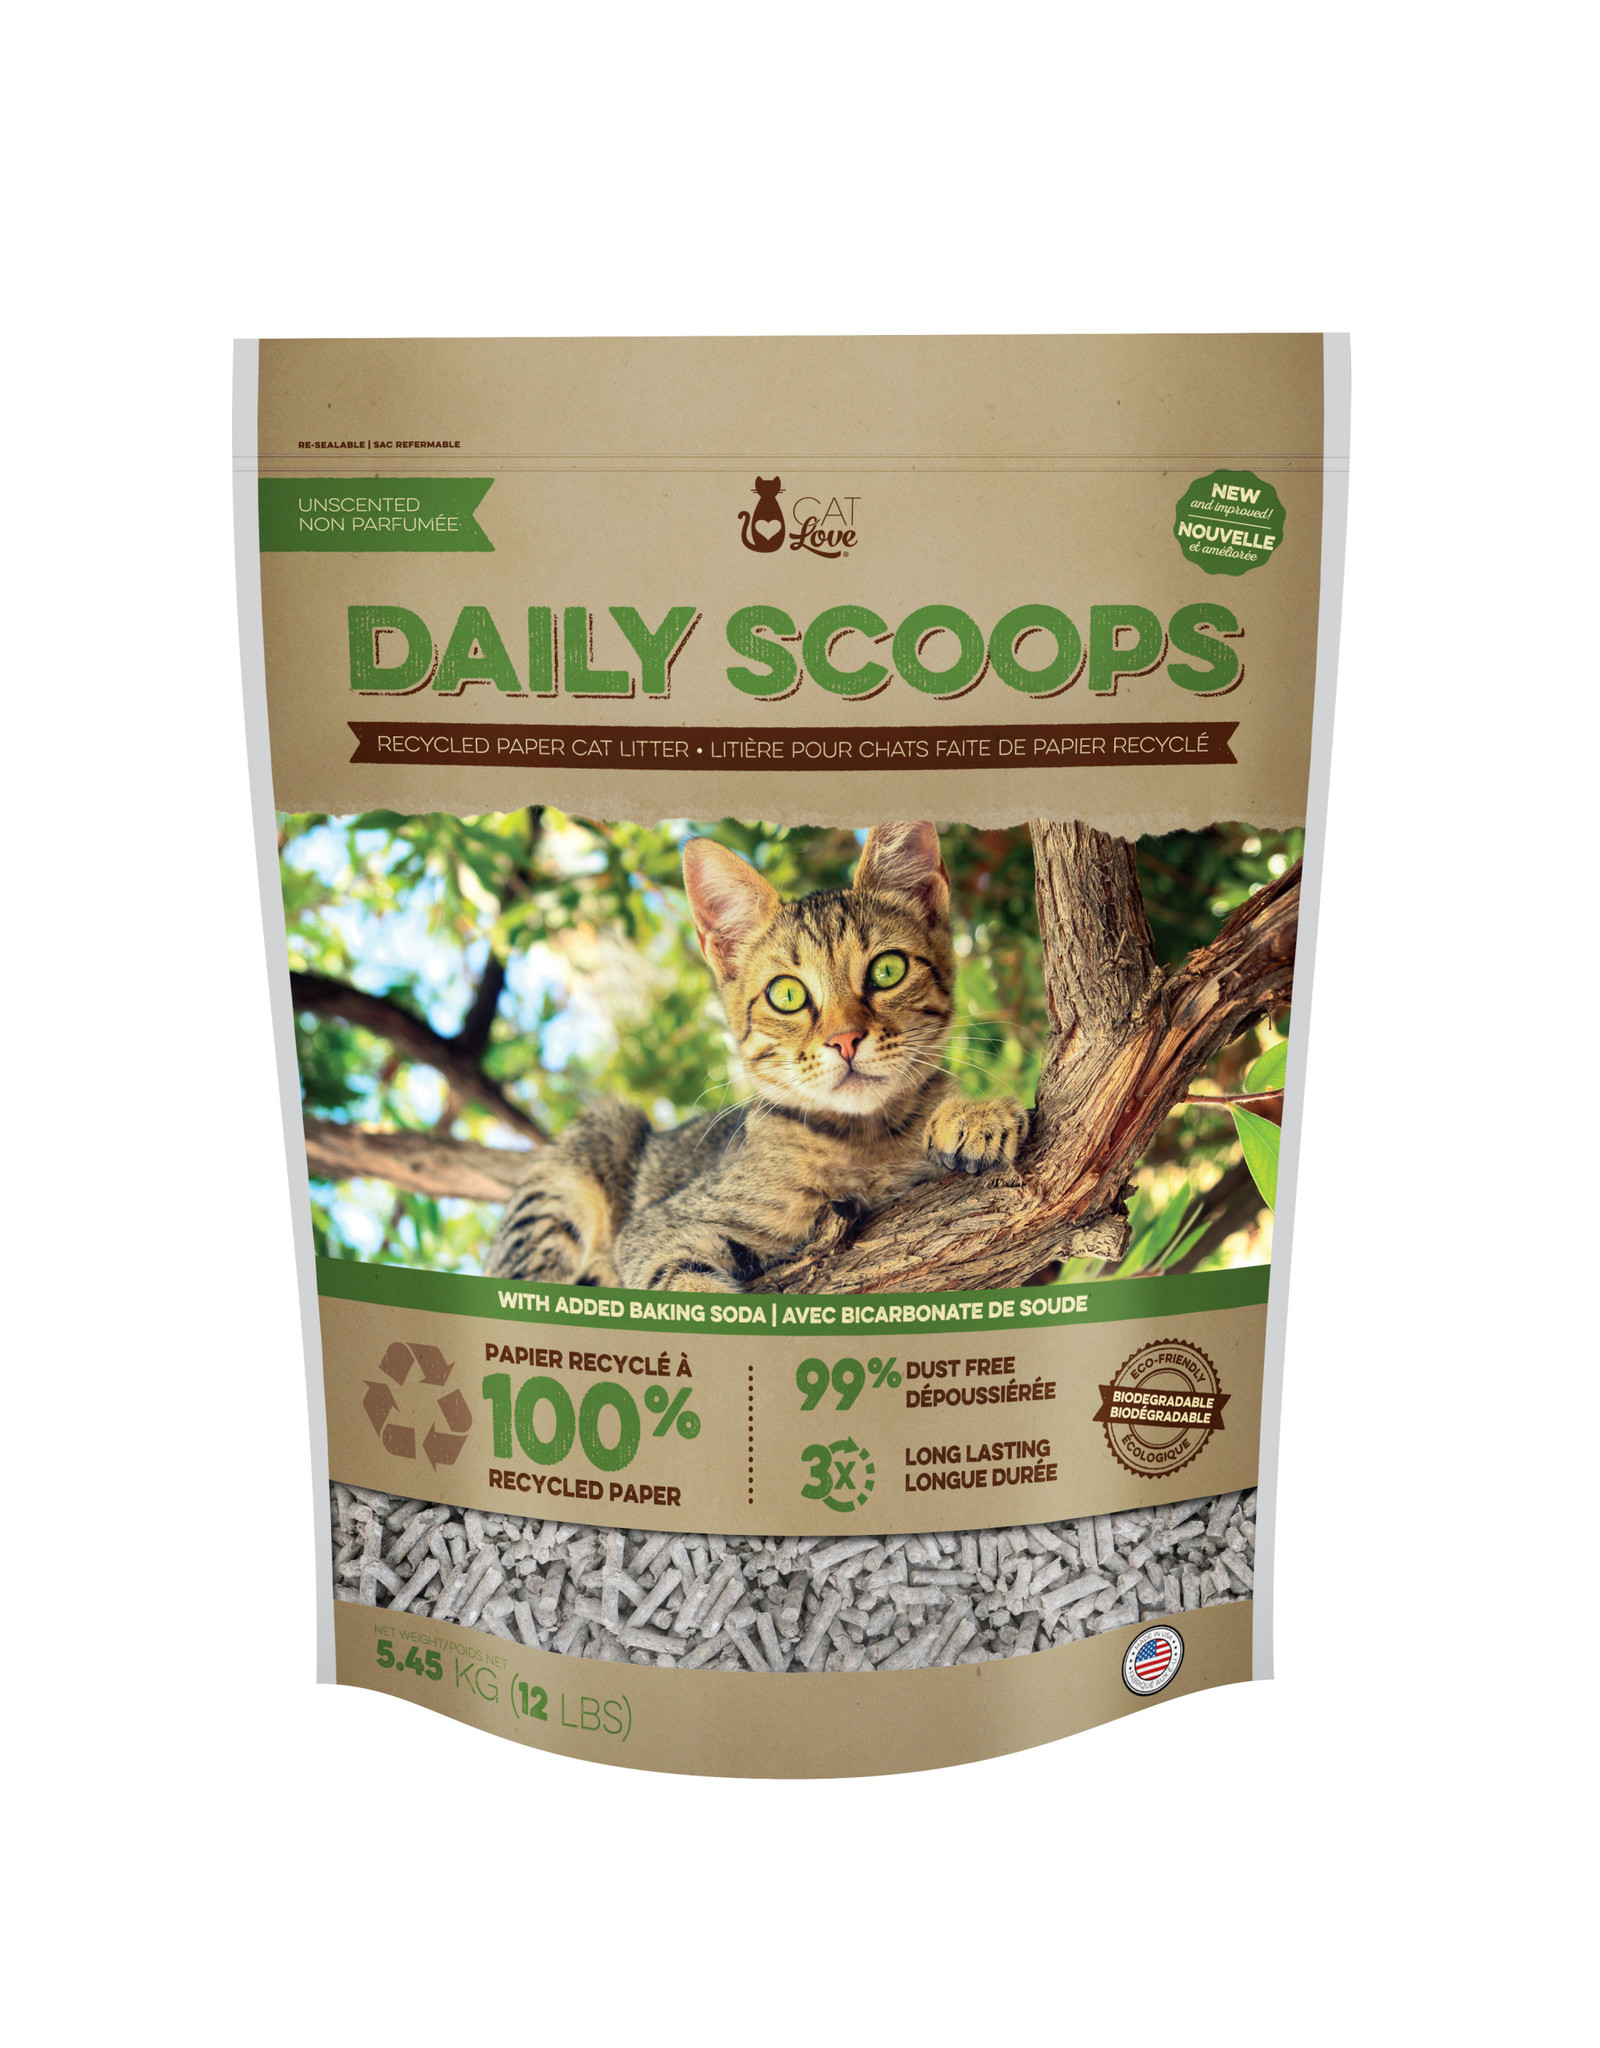 Cat Love Daily Scoops Recycled Paper Litter 12lb